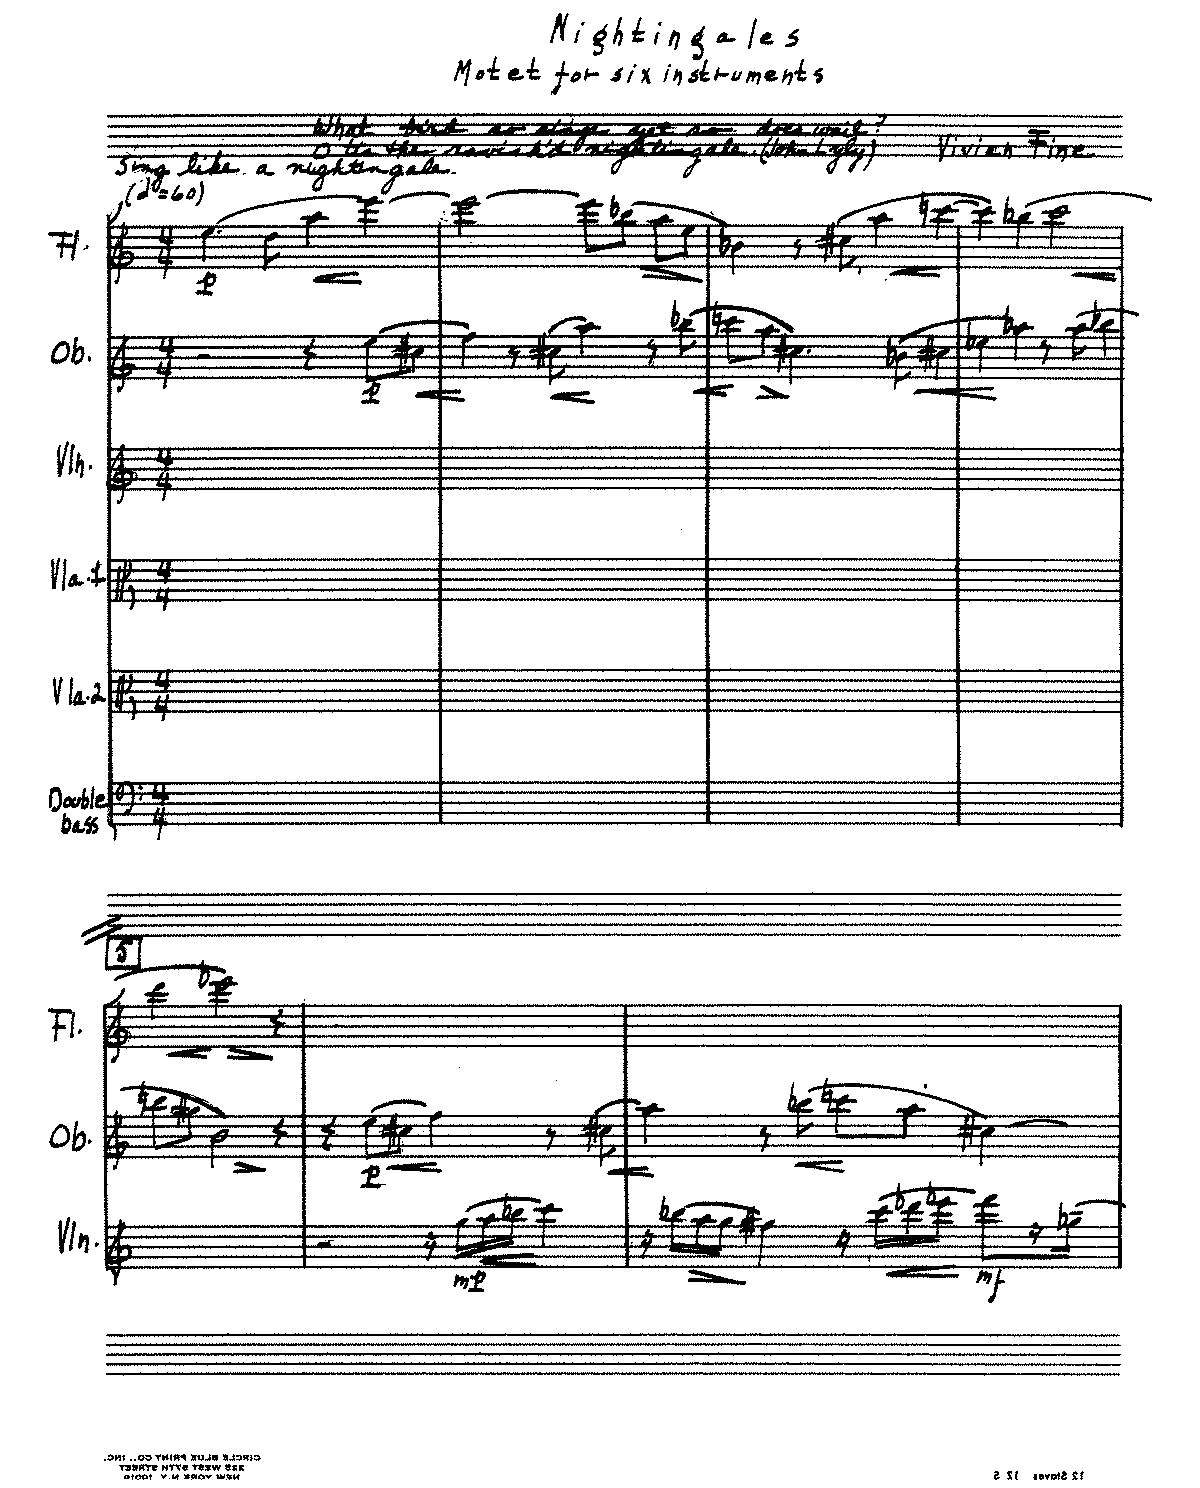 PMLP343320-Nightingales Motet Score.pdf